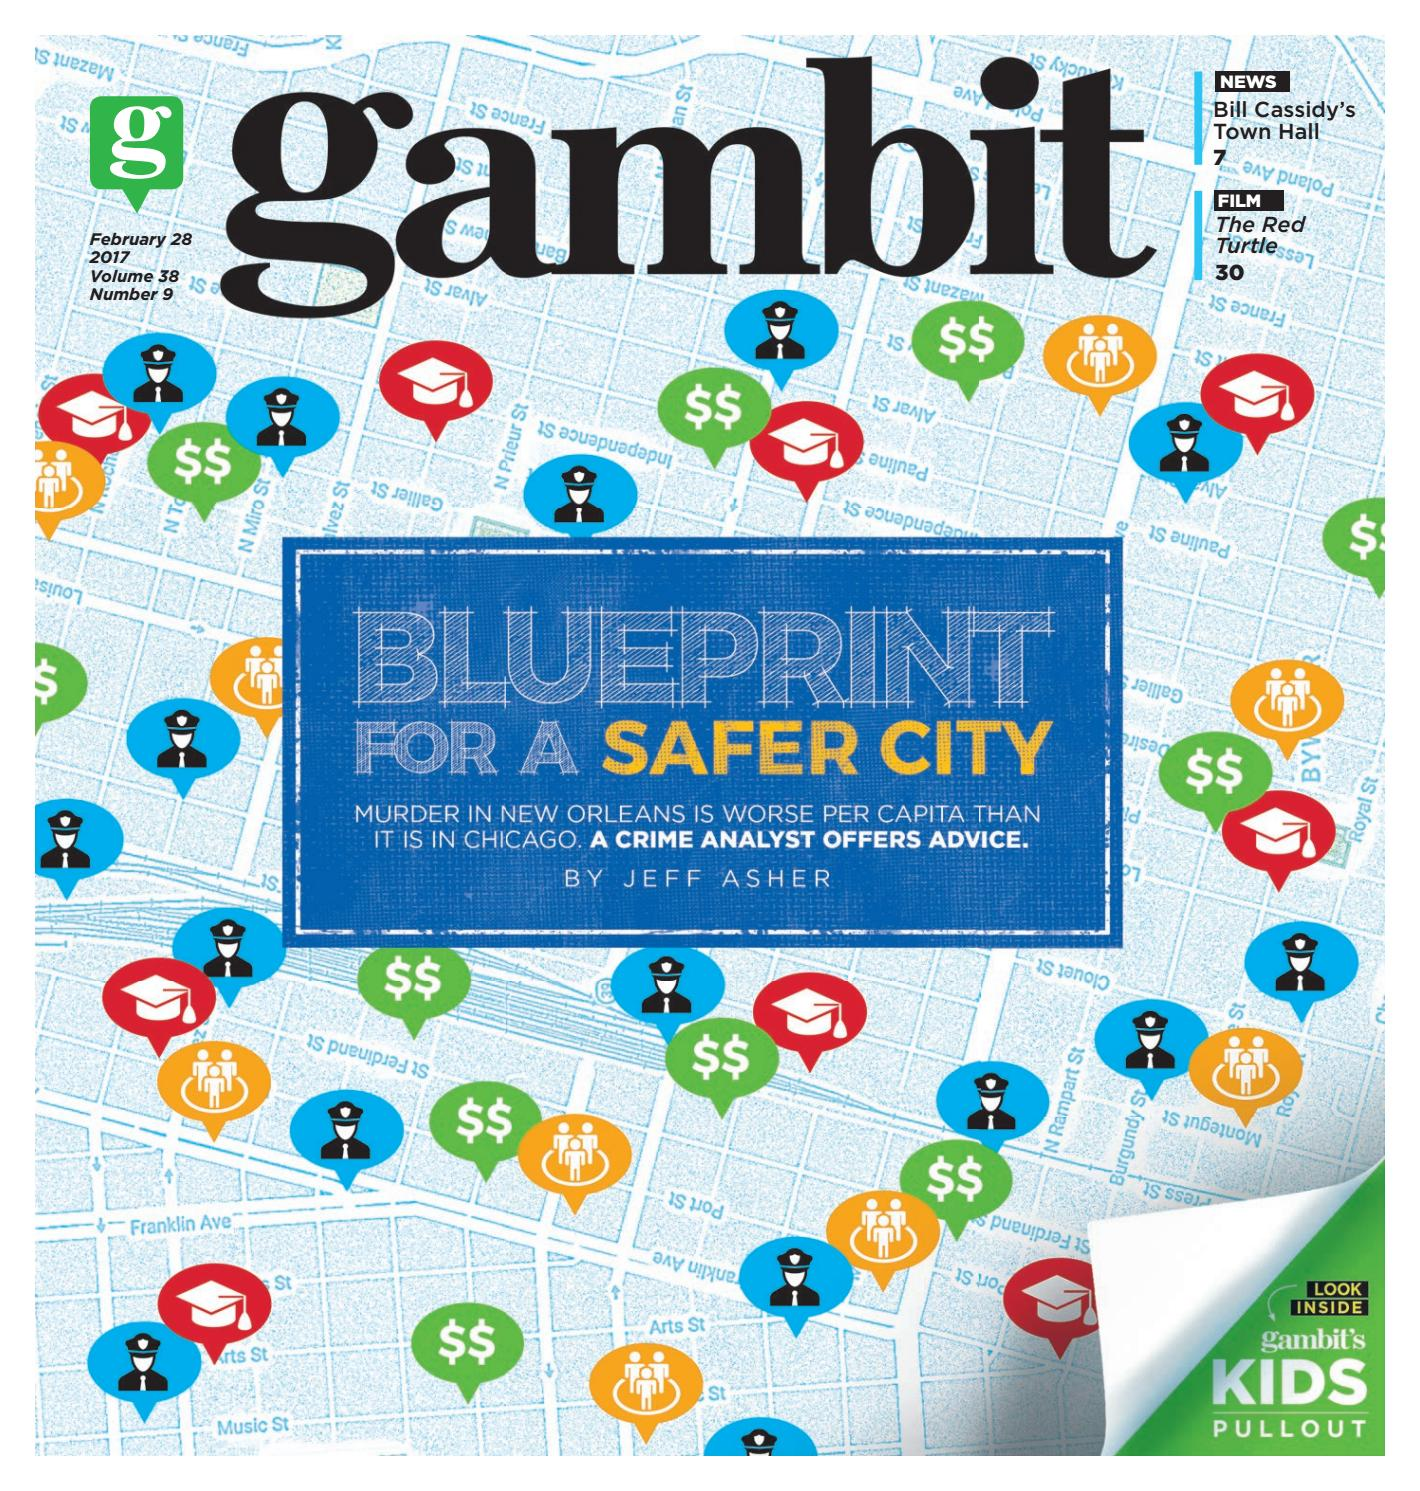 Gambit new orleans february 28 2017 by gambit new orleans issuu malvernweather Choice Image